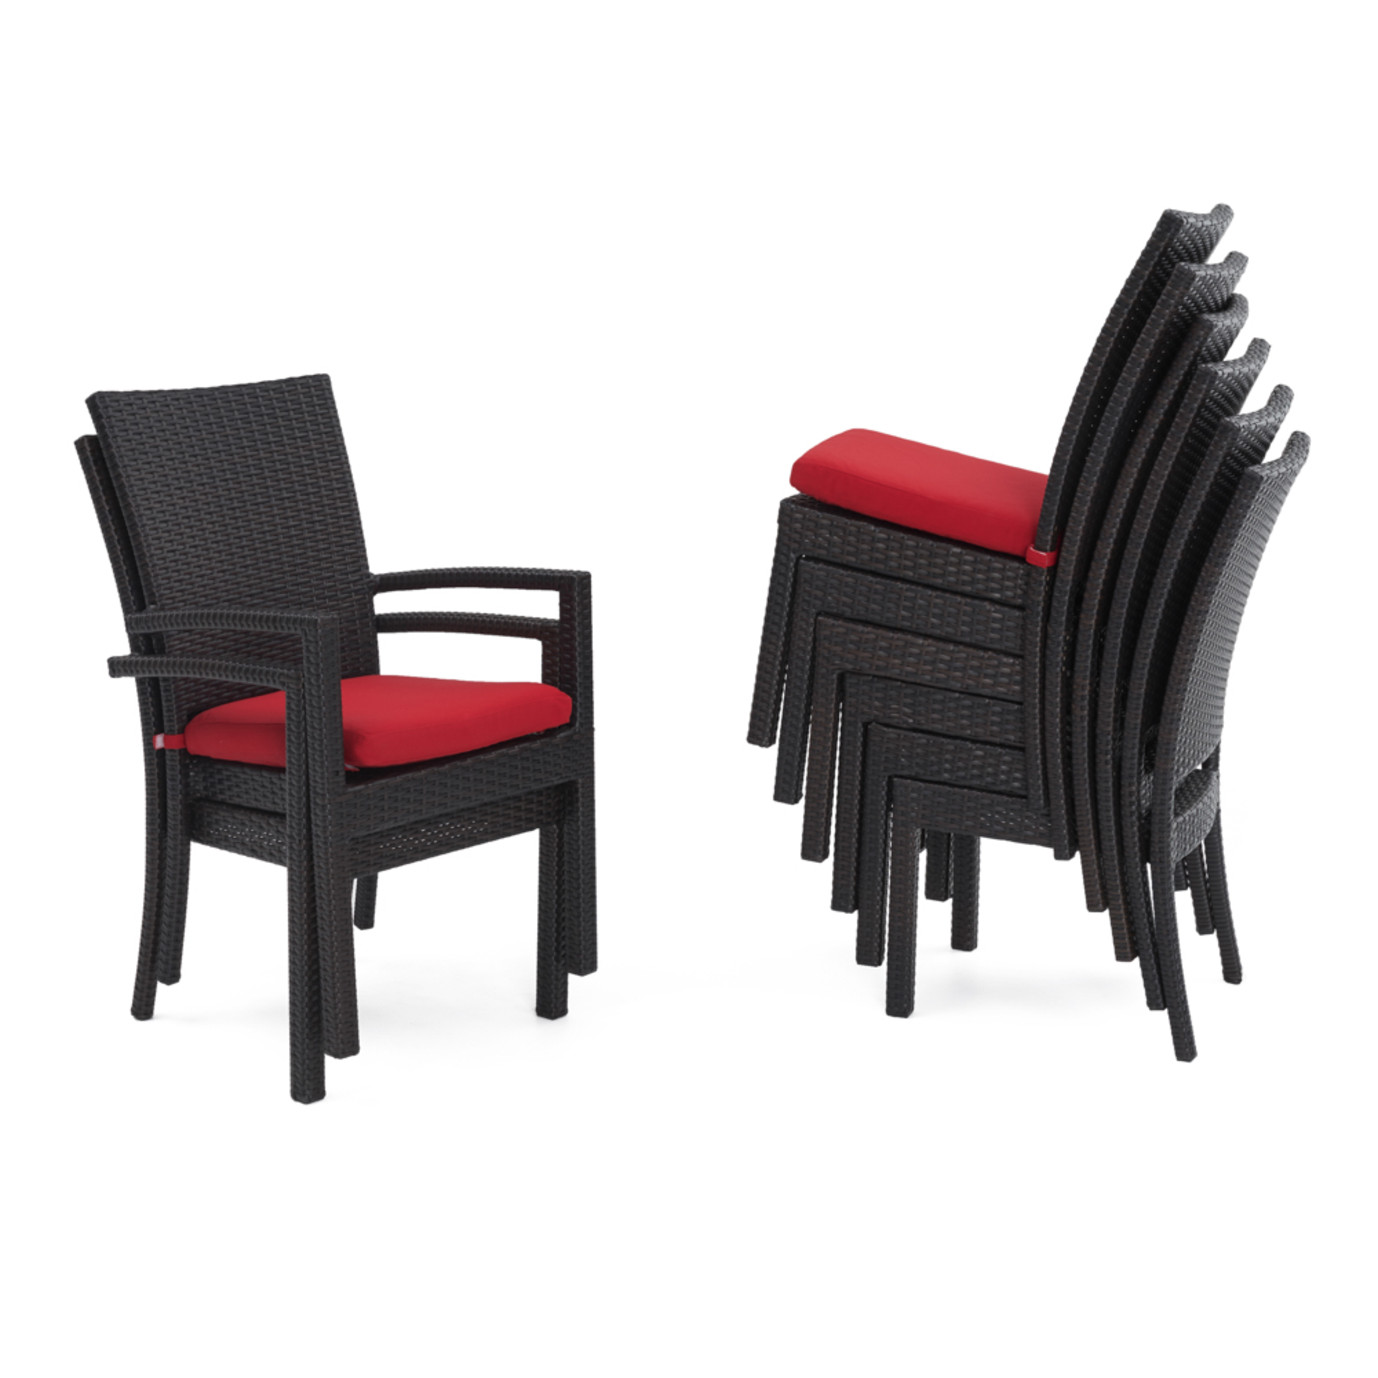 Deco™ 9pc Dining Set - Sunset Red